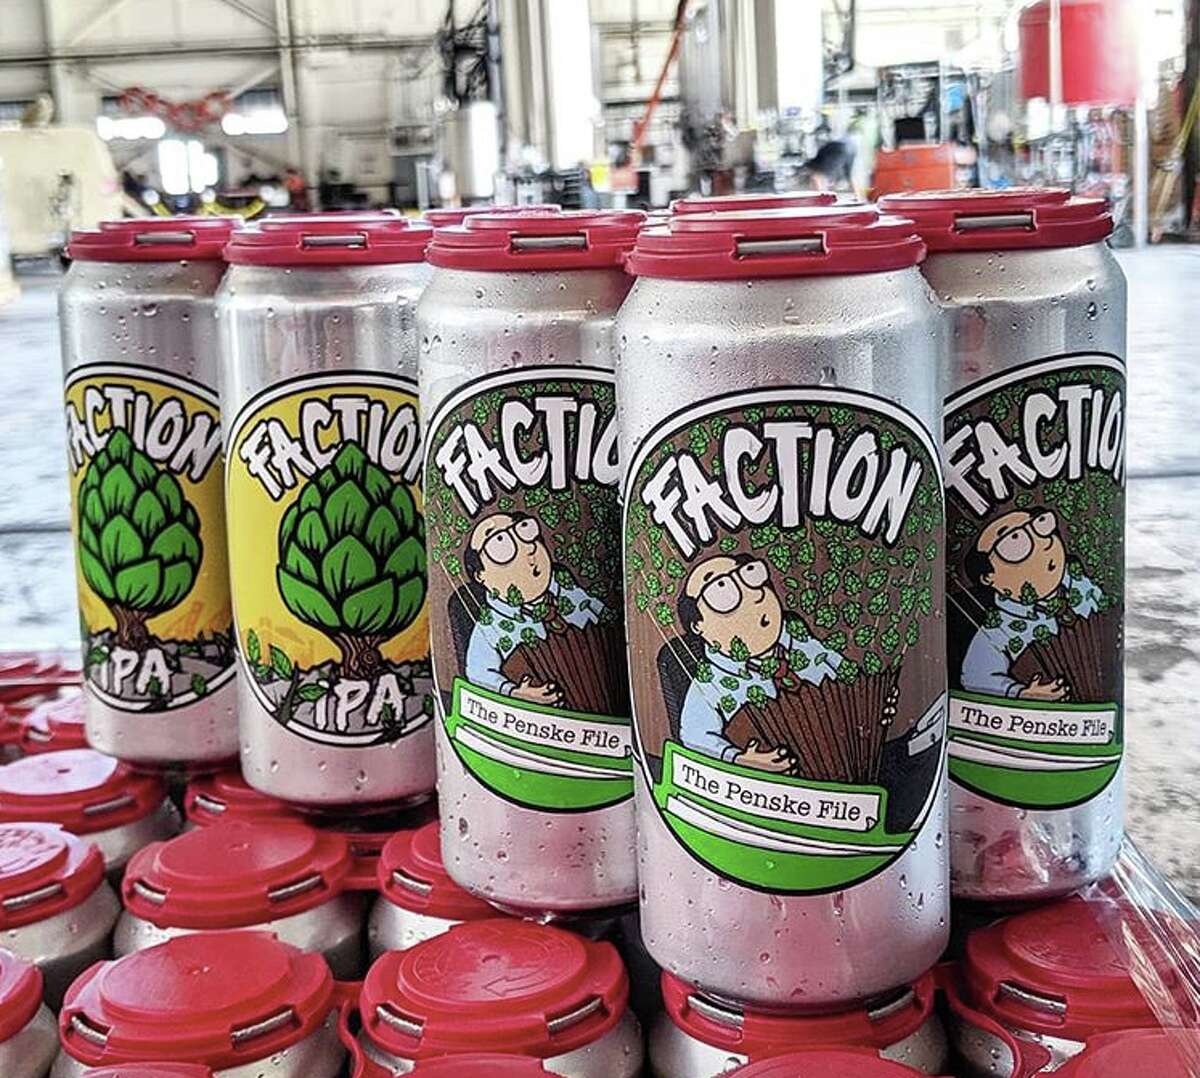 """The two decided to reconsider their usual contract. Typically, the Can Van works with a minimum canning order of about 100-200 cases of beer - each case is 24 cans - and that typically keeps a van onsite at a brewery all day. But not all the very small breweries can fill that much beer or afford that expense, especially now, so Herrema and Coyle decided to do away with the requirement. """"We'll do 40 cases and pack up and go across town and do another,"""" Herrema says. """"It all kind of evens out,"""" Coyle continues. """"We've got bigger jobs and smaller jobs. We're willing to loosen things up on the smaller [end] to give everyone the best opportunity. It's the big and small that make up the diverse fabric of the craft beer industry."""""""